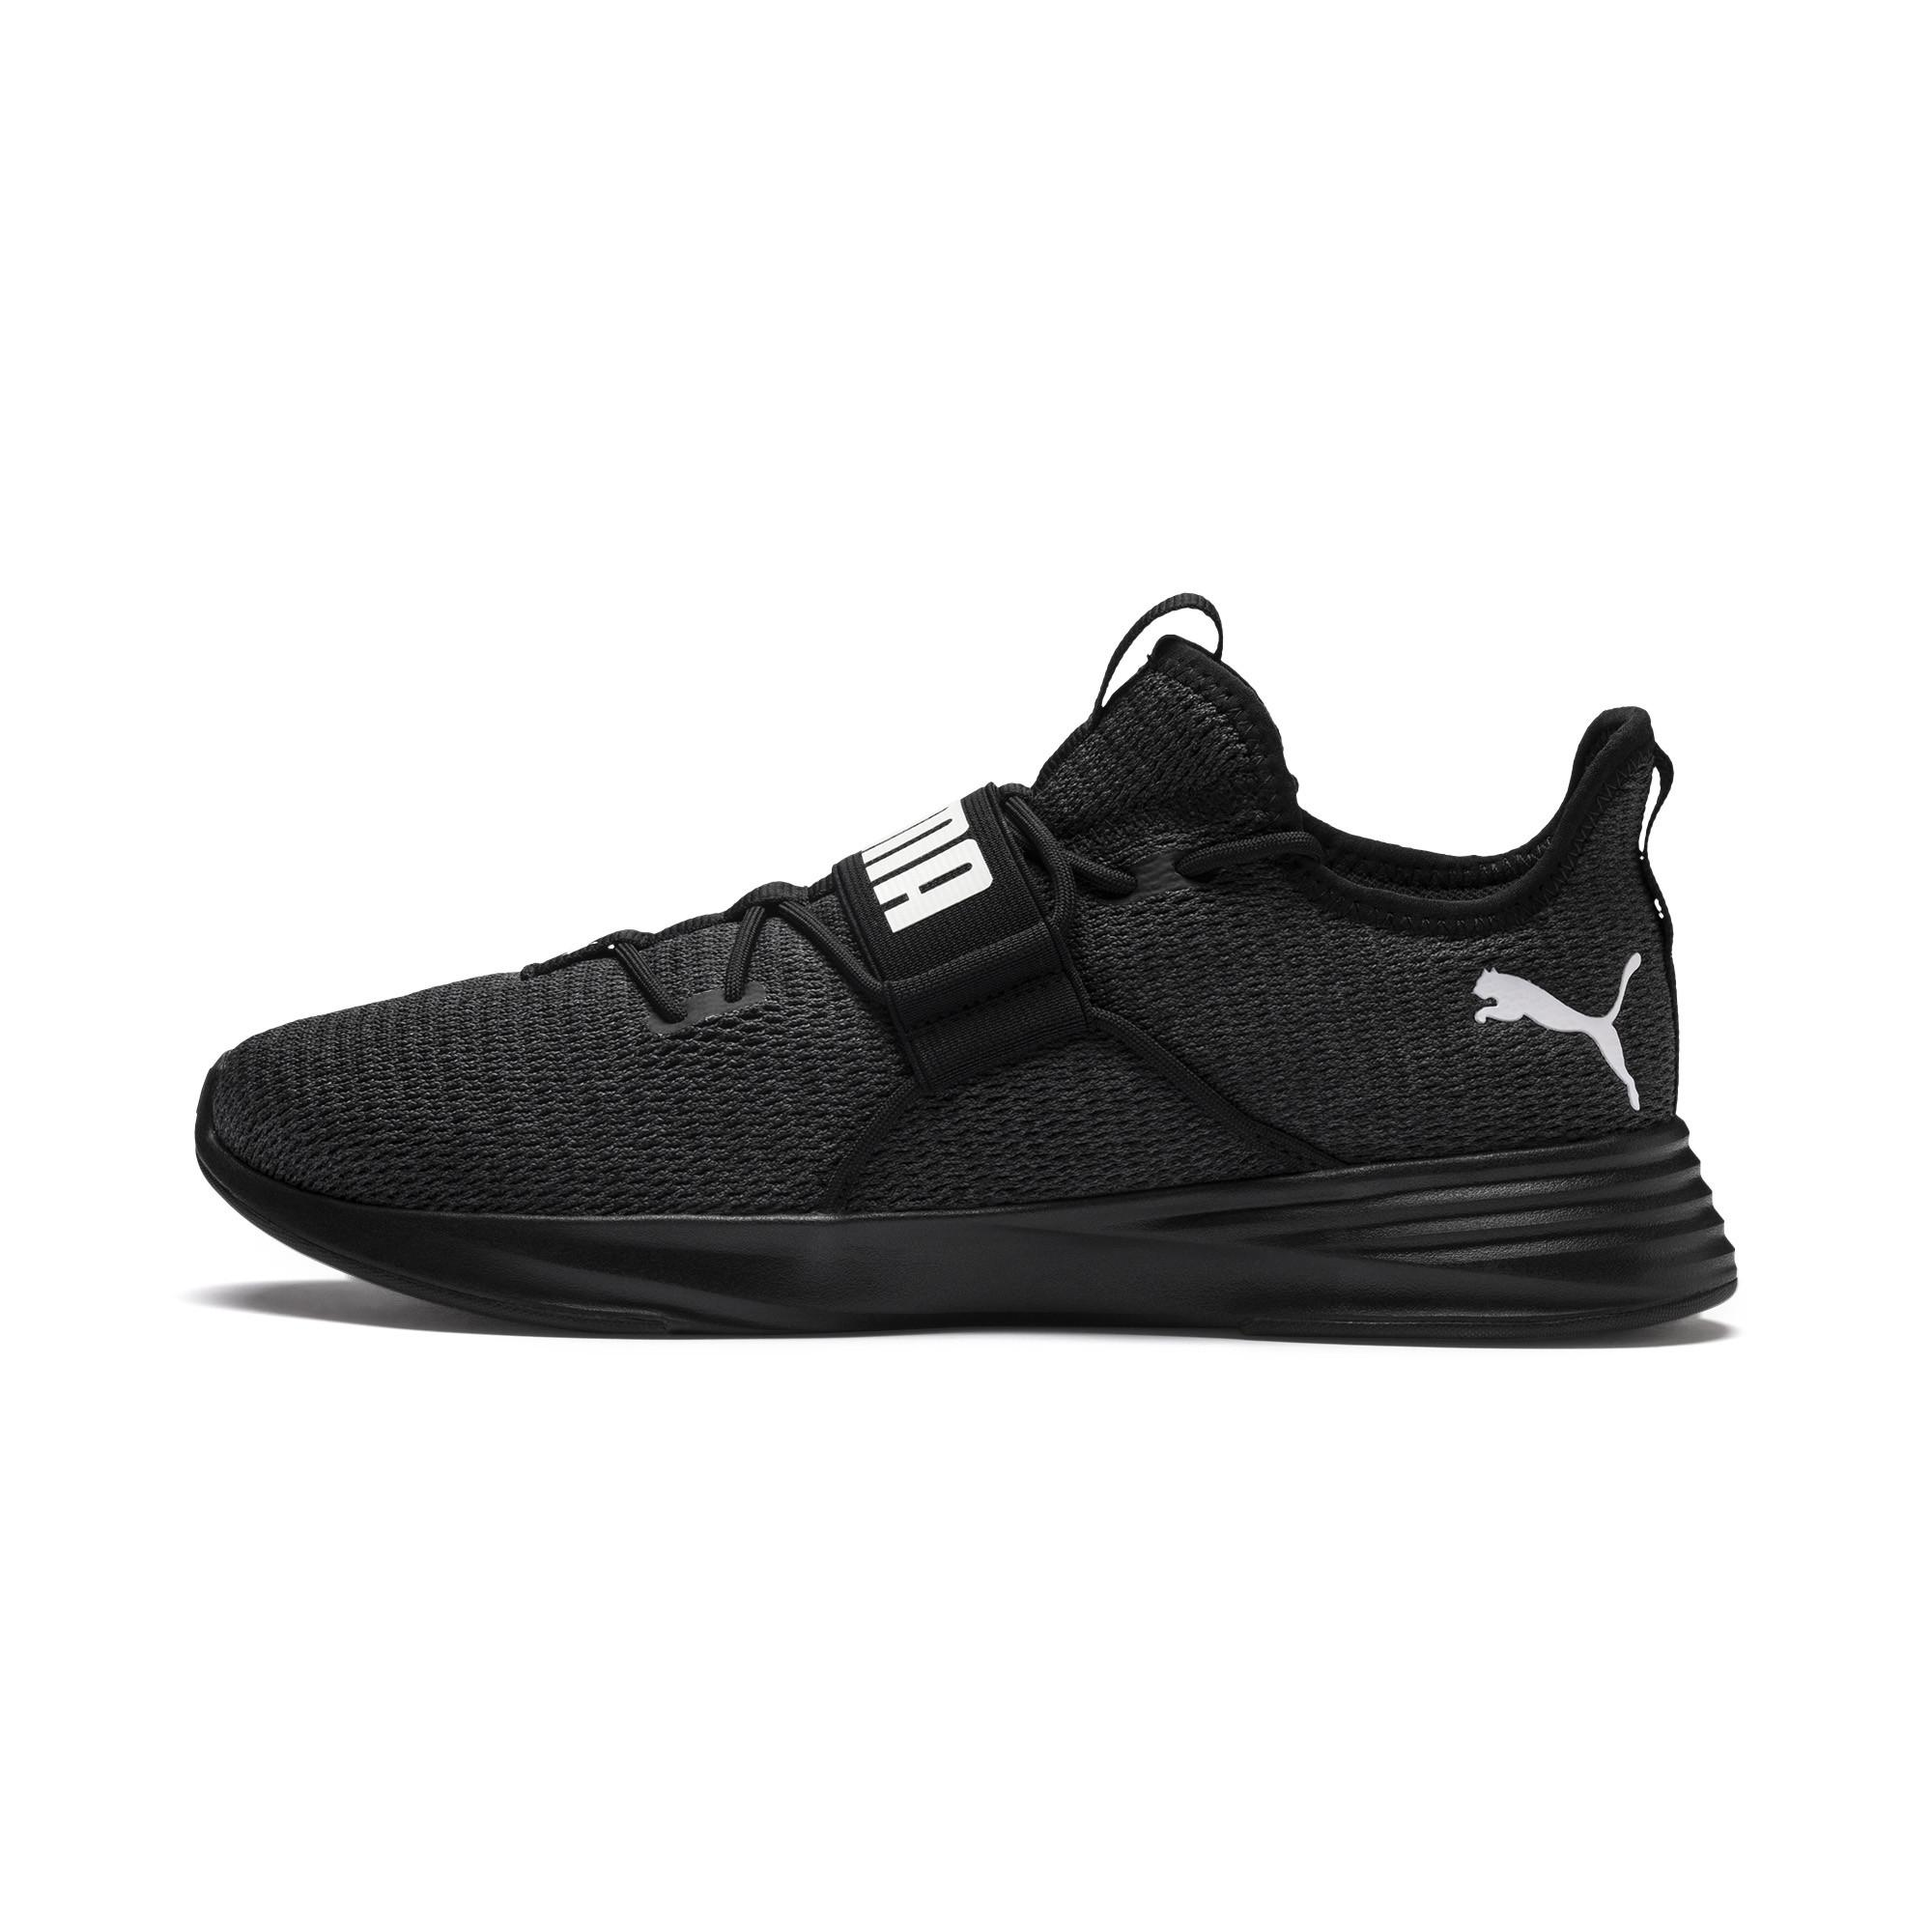 85fd20f4446 Lyst - PUMA Persist Xt Men s Training Shoes in Black for Men